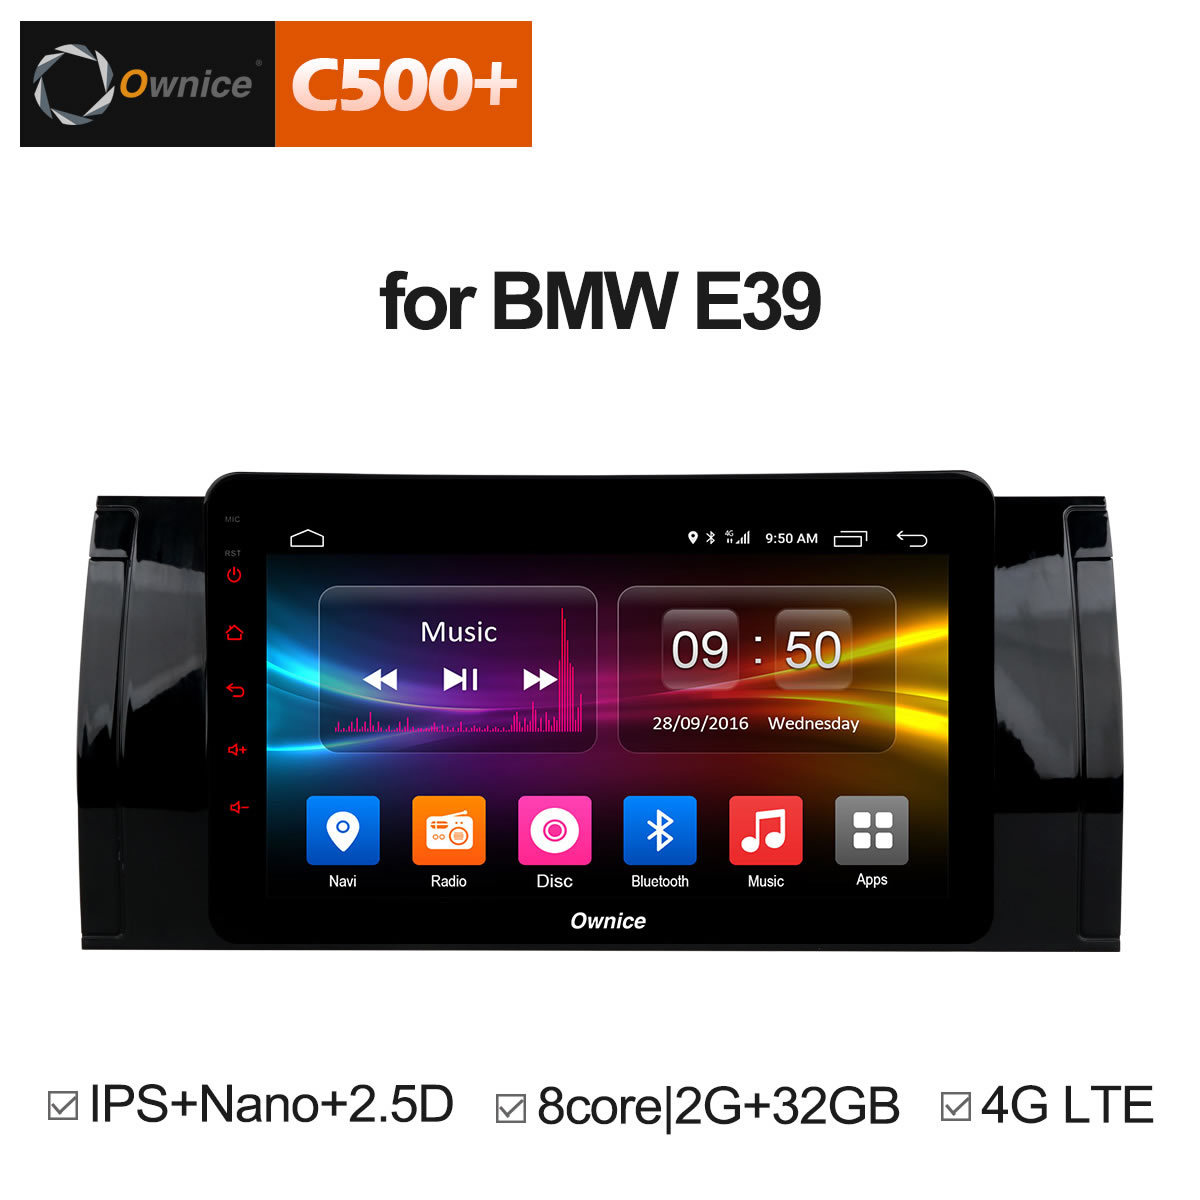 Discount Ownice C500+ G10 Octa Core android 8.1 Car DVD player 32G ROM  for bmw E39 GPS Radio RDS GPS Navi stereo player 2G ram 4G LTE 0